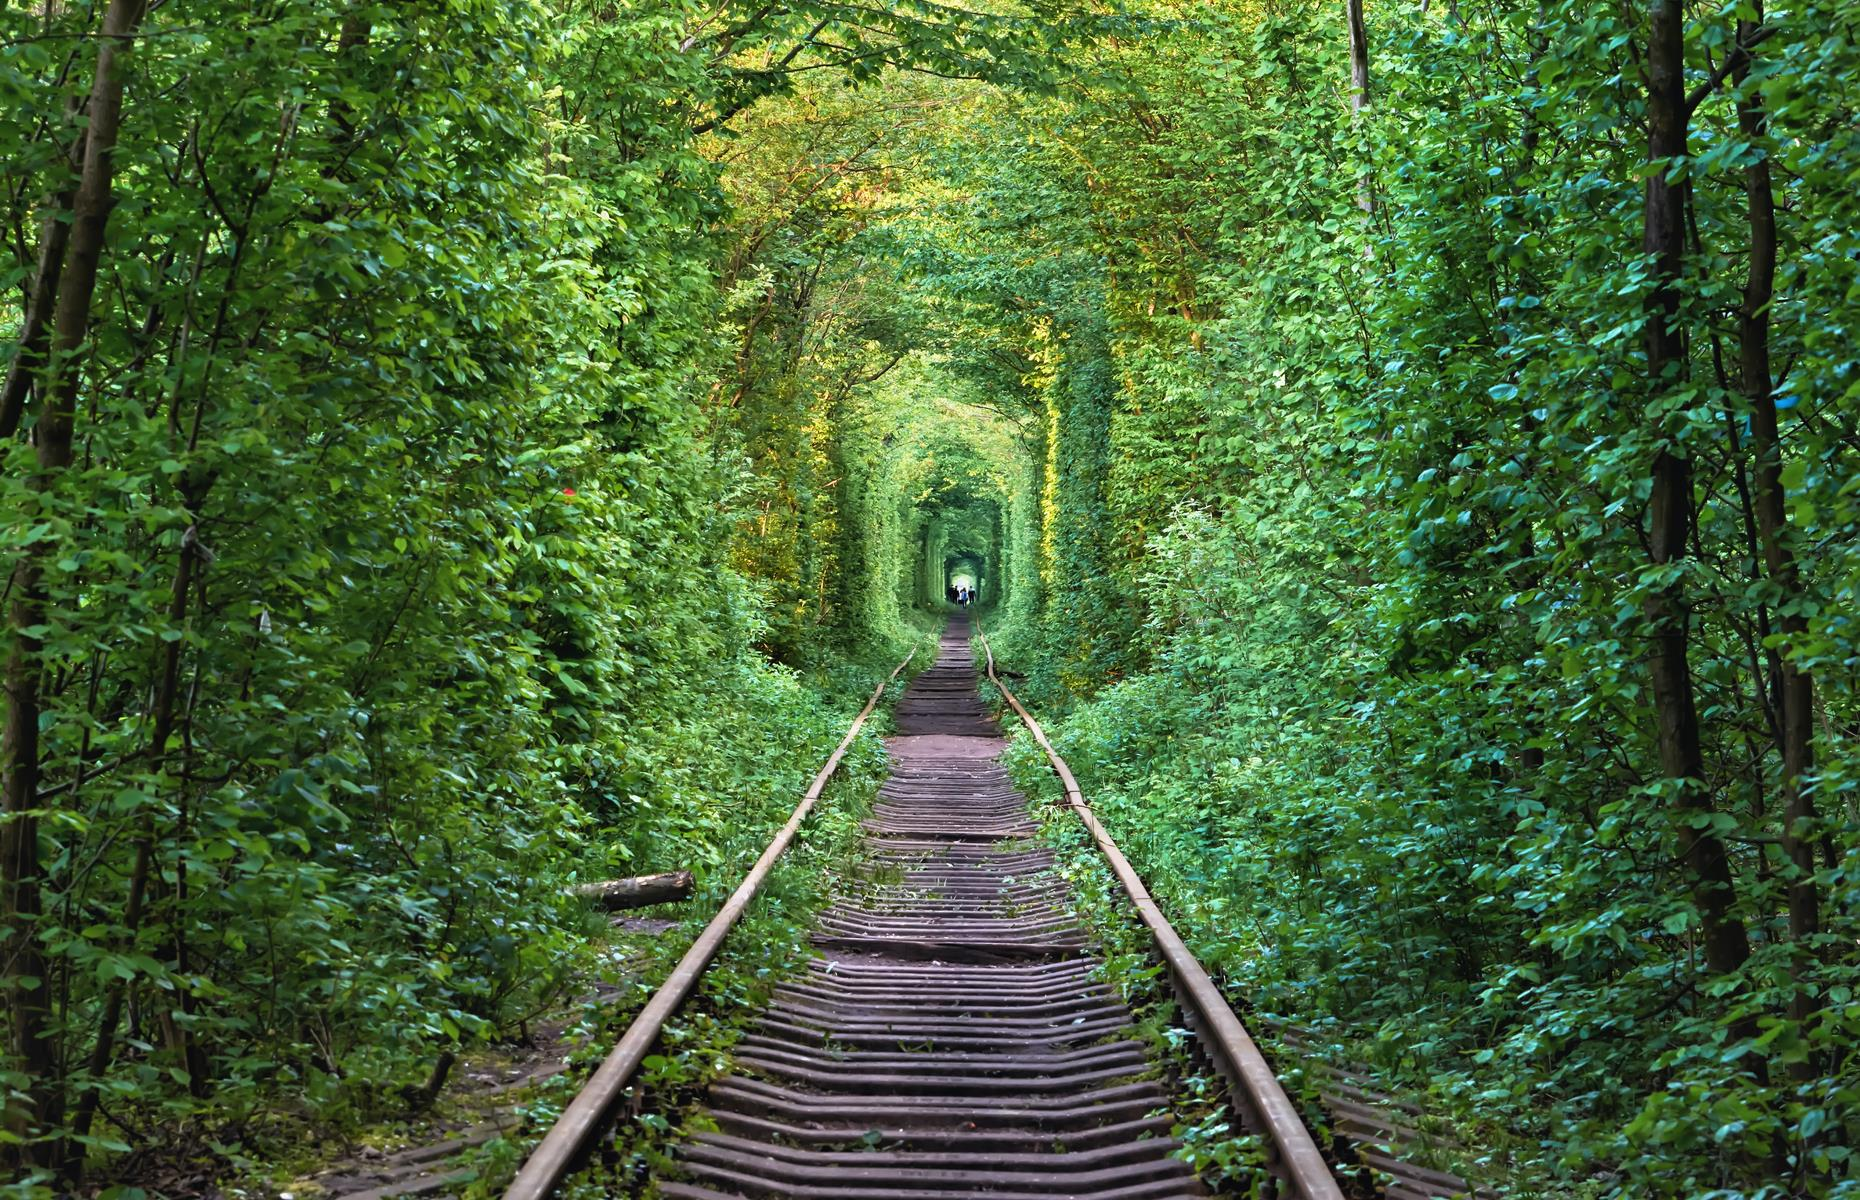 Slide 15 of 31: Another photographer favorite is the Ukraine's so-called Tunnel of Love. It's found along a stretch of an old railway line that runs from the town of Klevan to the Orzhiv Woodworking Plant. After becoming disused the trees grew around the track and their branches became entangled to create a perfect ethereal emerald canopy. Spring and summer are the best times to see the tunnel at its most vibrant although fall lends lovely mellow tones to the spectacle.